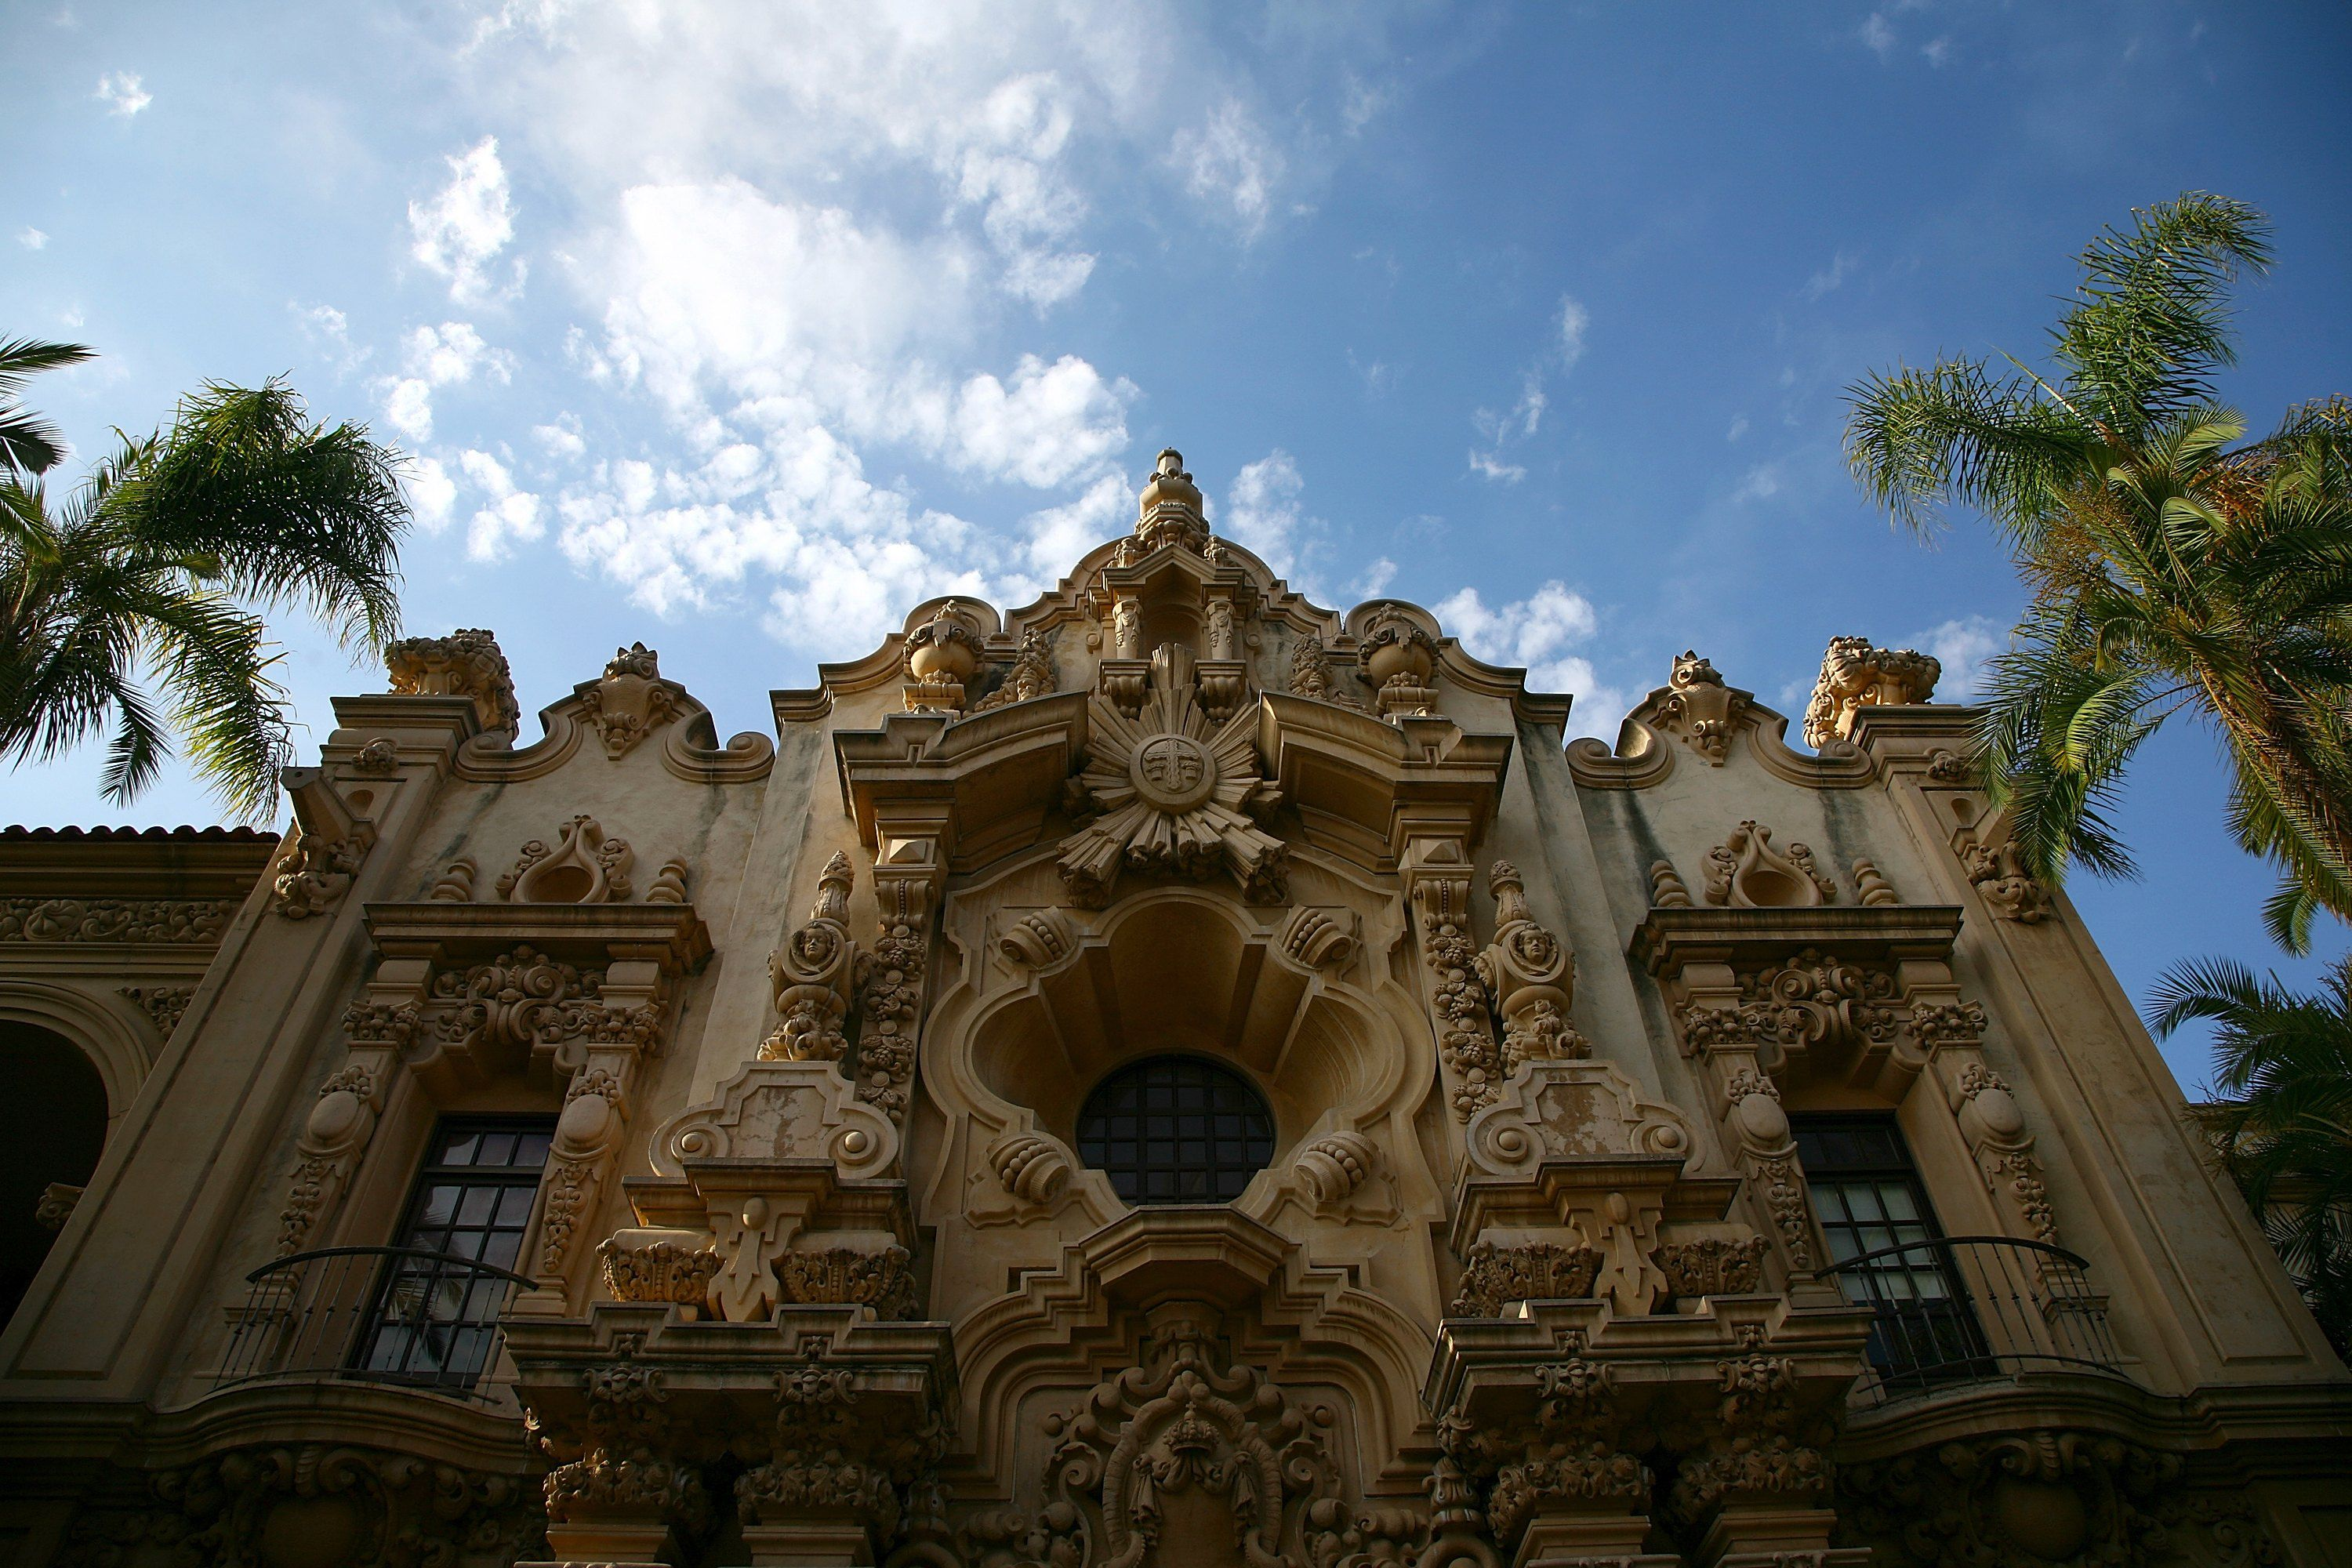 detailed facade of ornate building in San Diego, California, palm trees